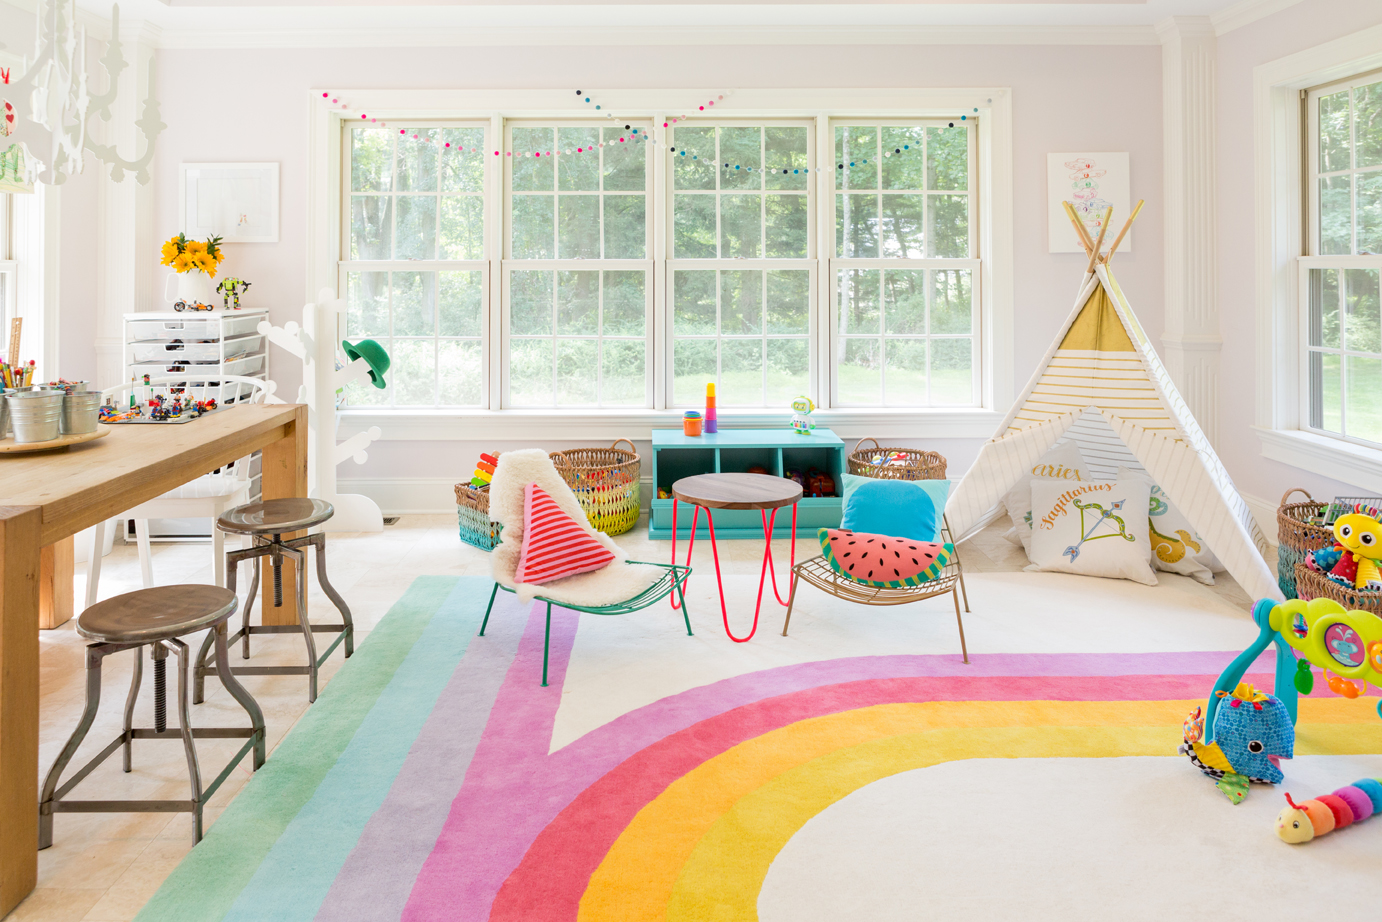 HOW TO CREATE A PERFECT PLAYROOM FOR YOUR KIDS - 6